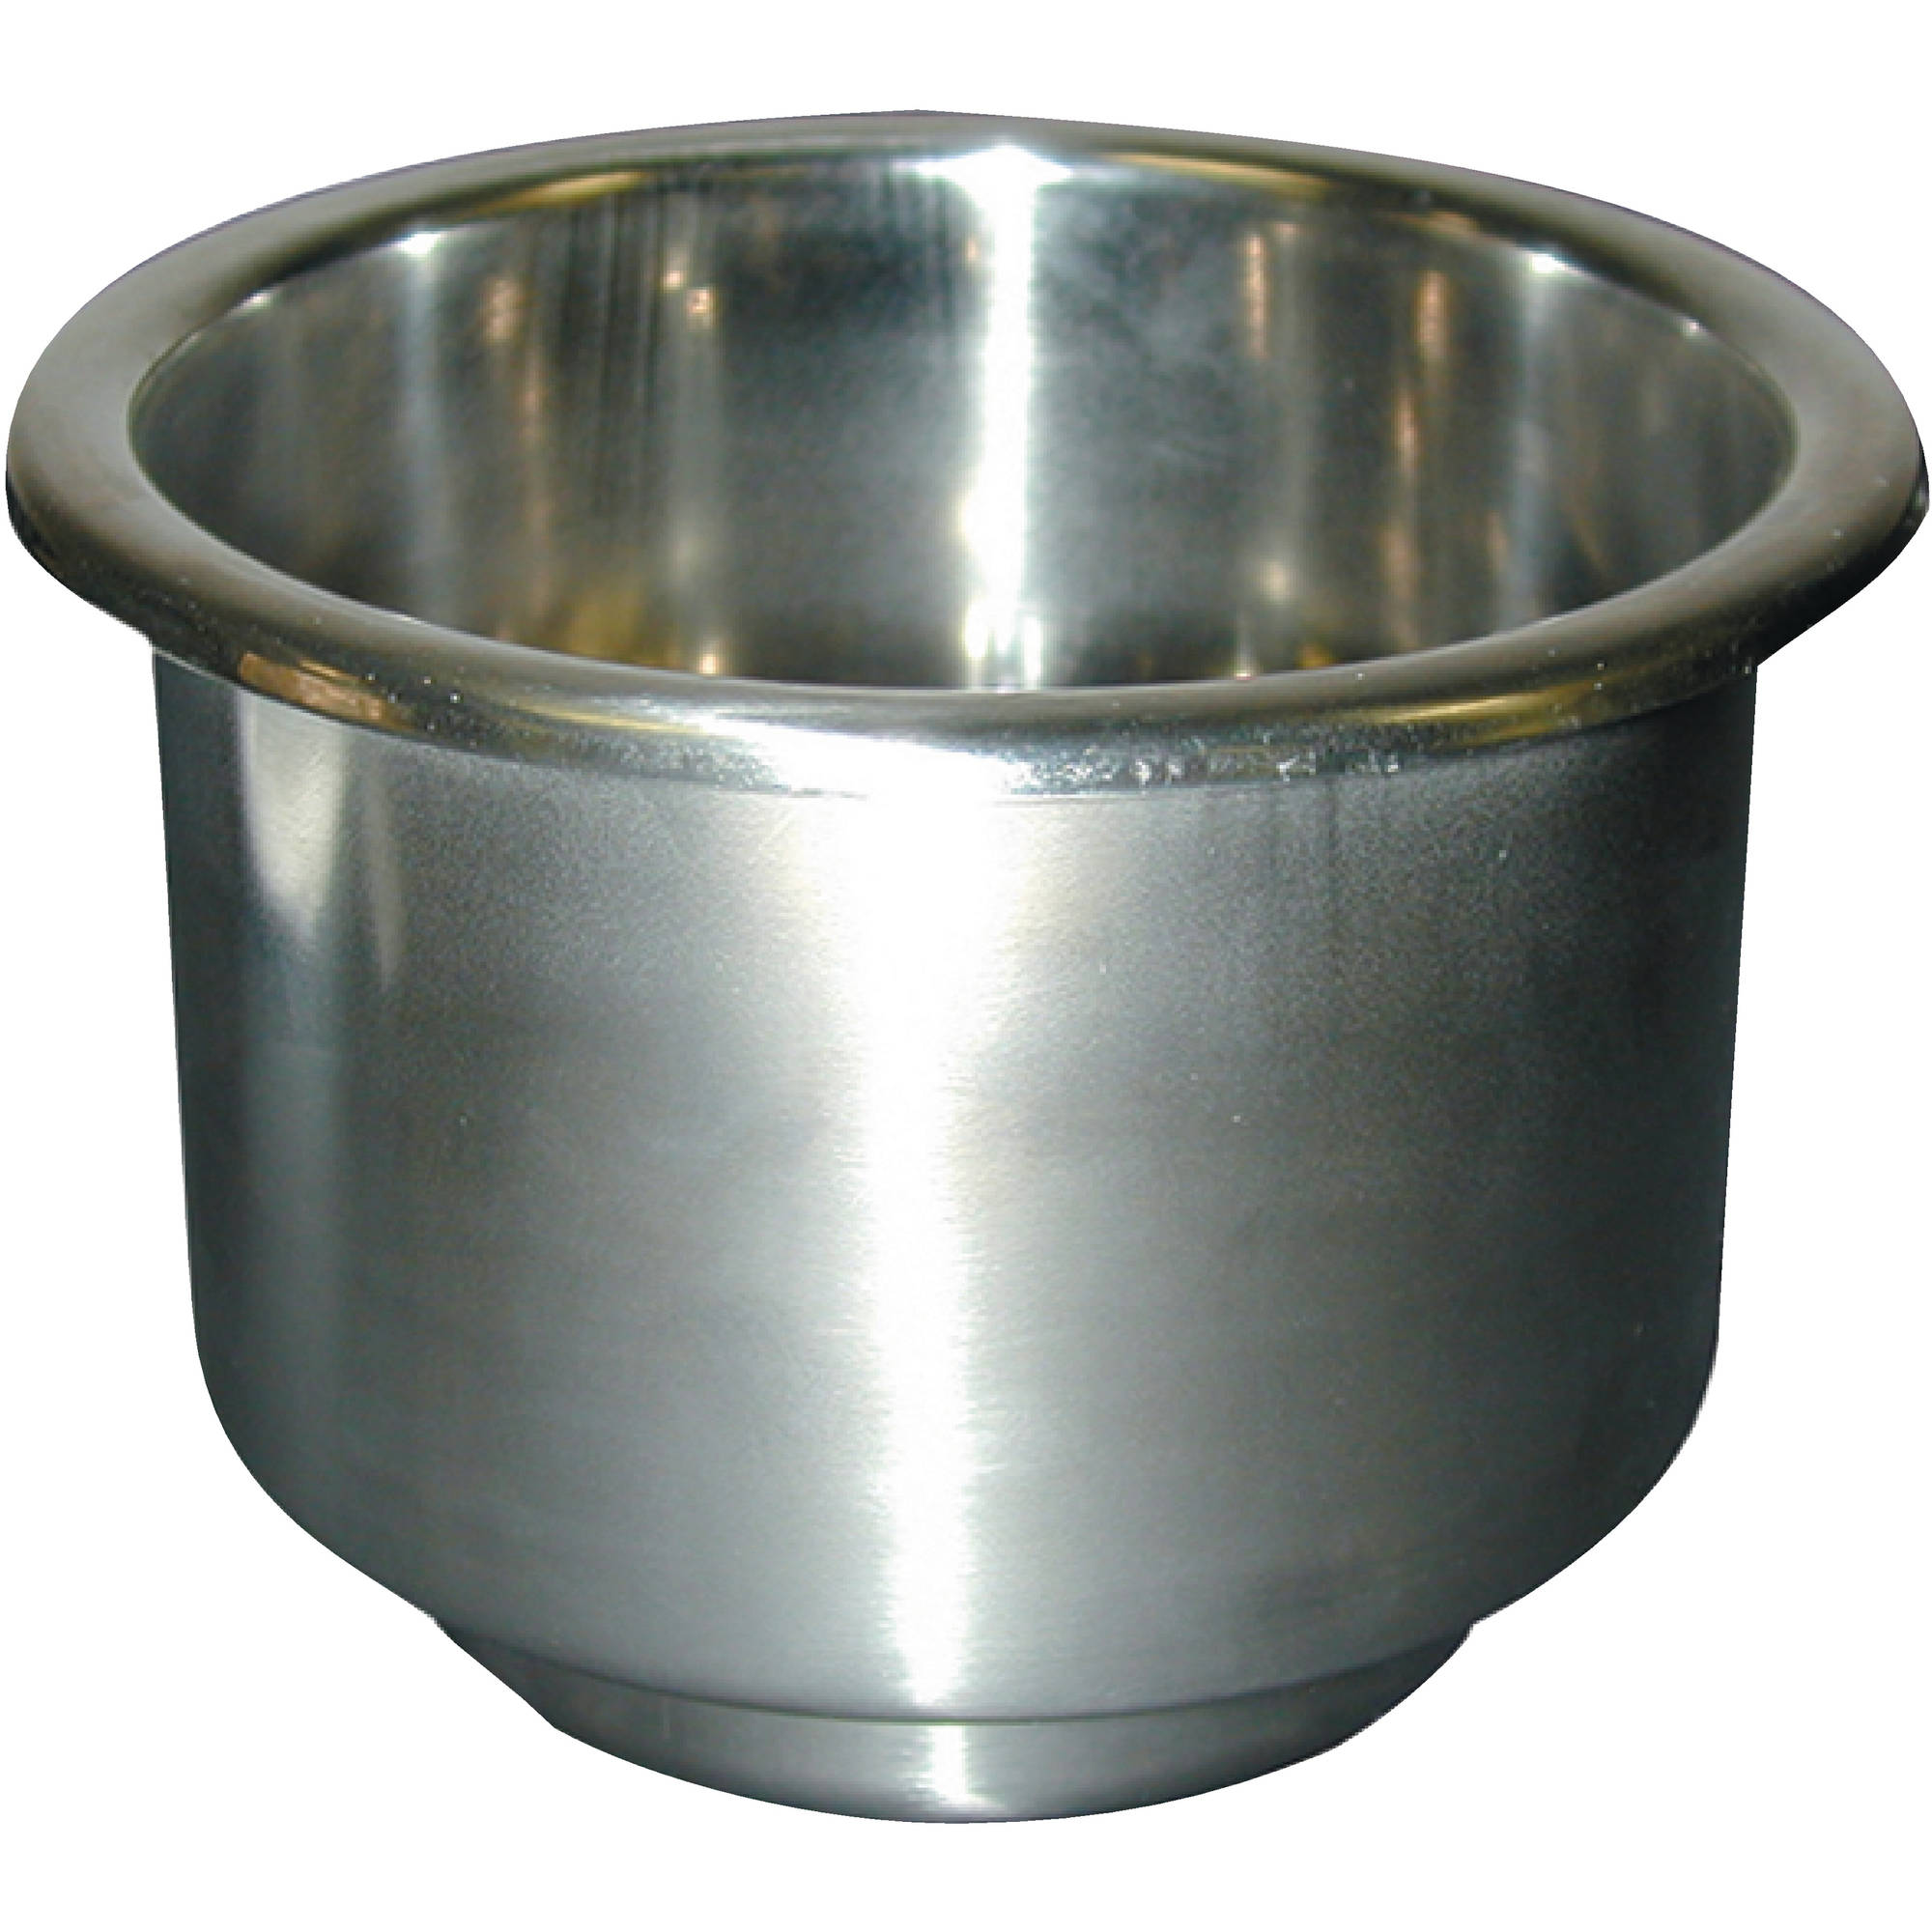 "T-H Marine Stainless Steel Cup Holder 3-3 4"" Diameter with 3 8"" Drain by T-H Marine Supplies"